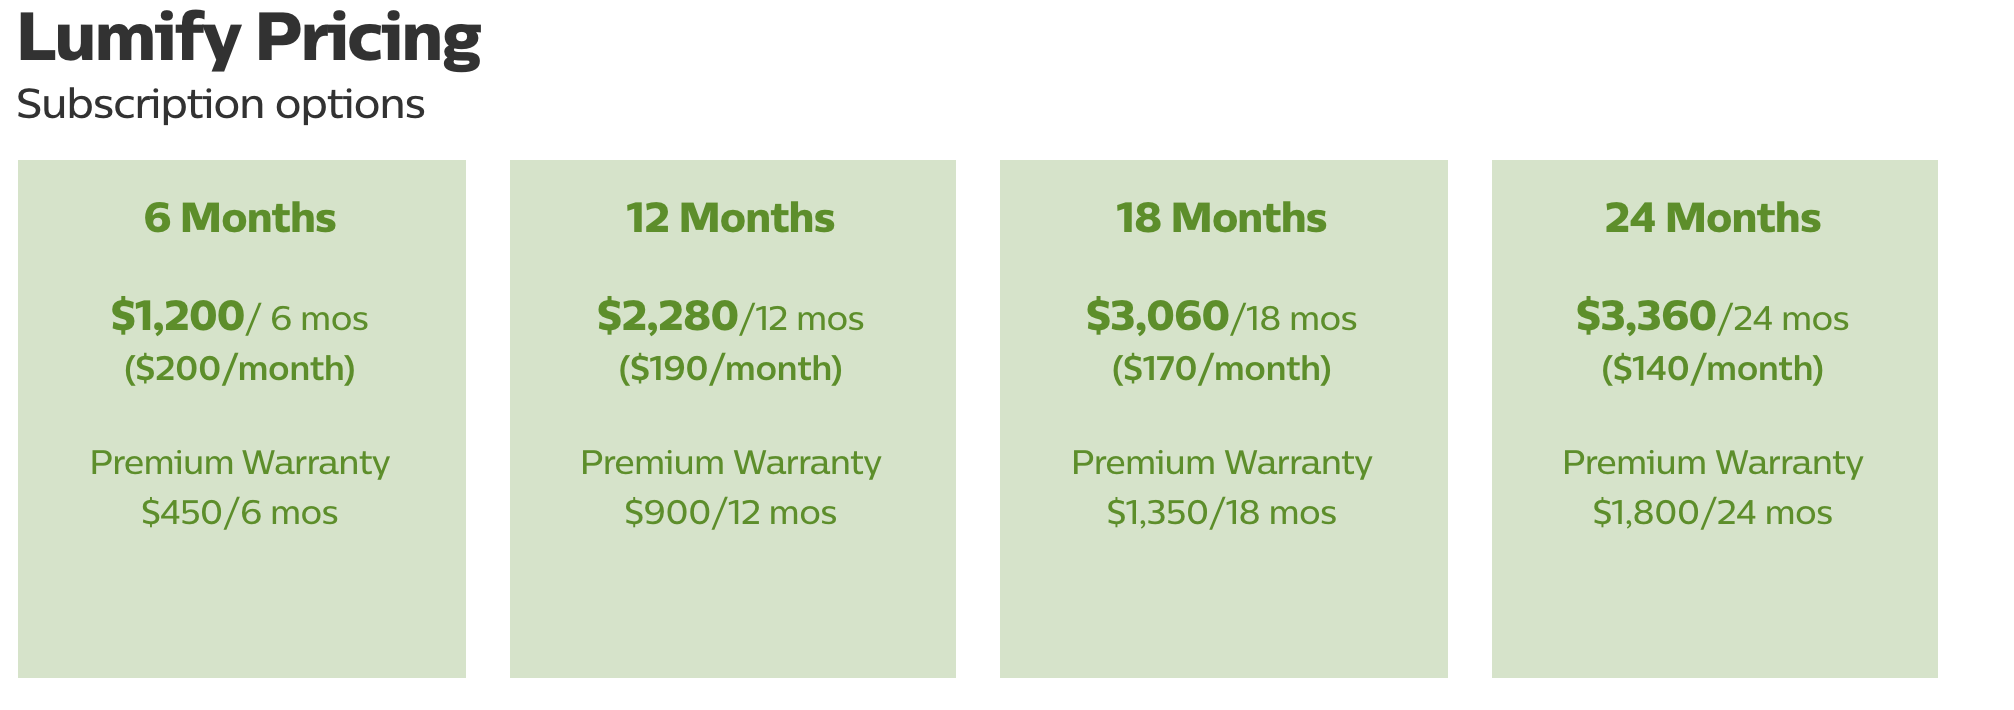 Image 7 . Lumify Pricing